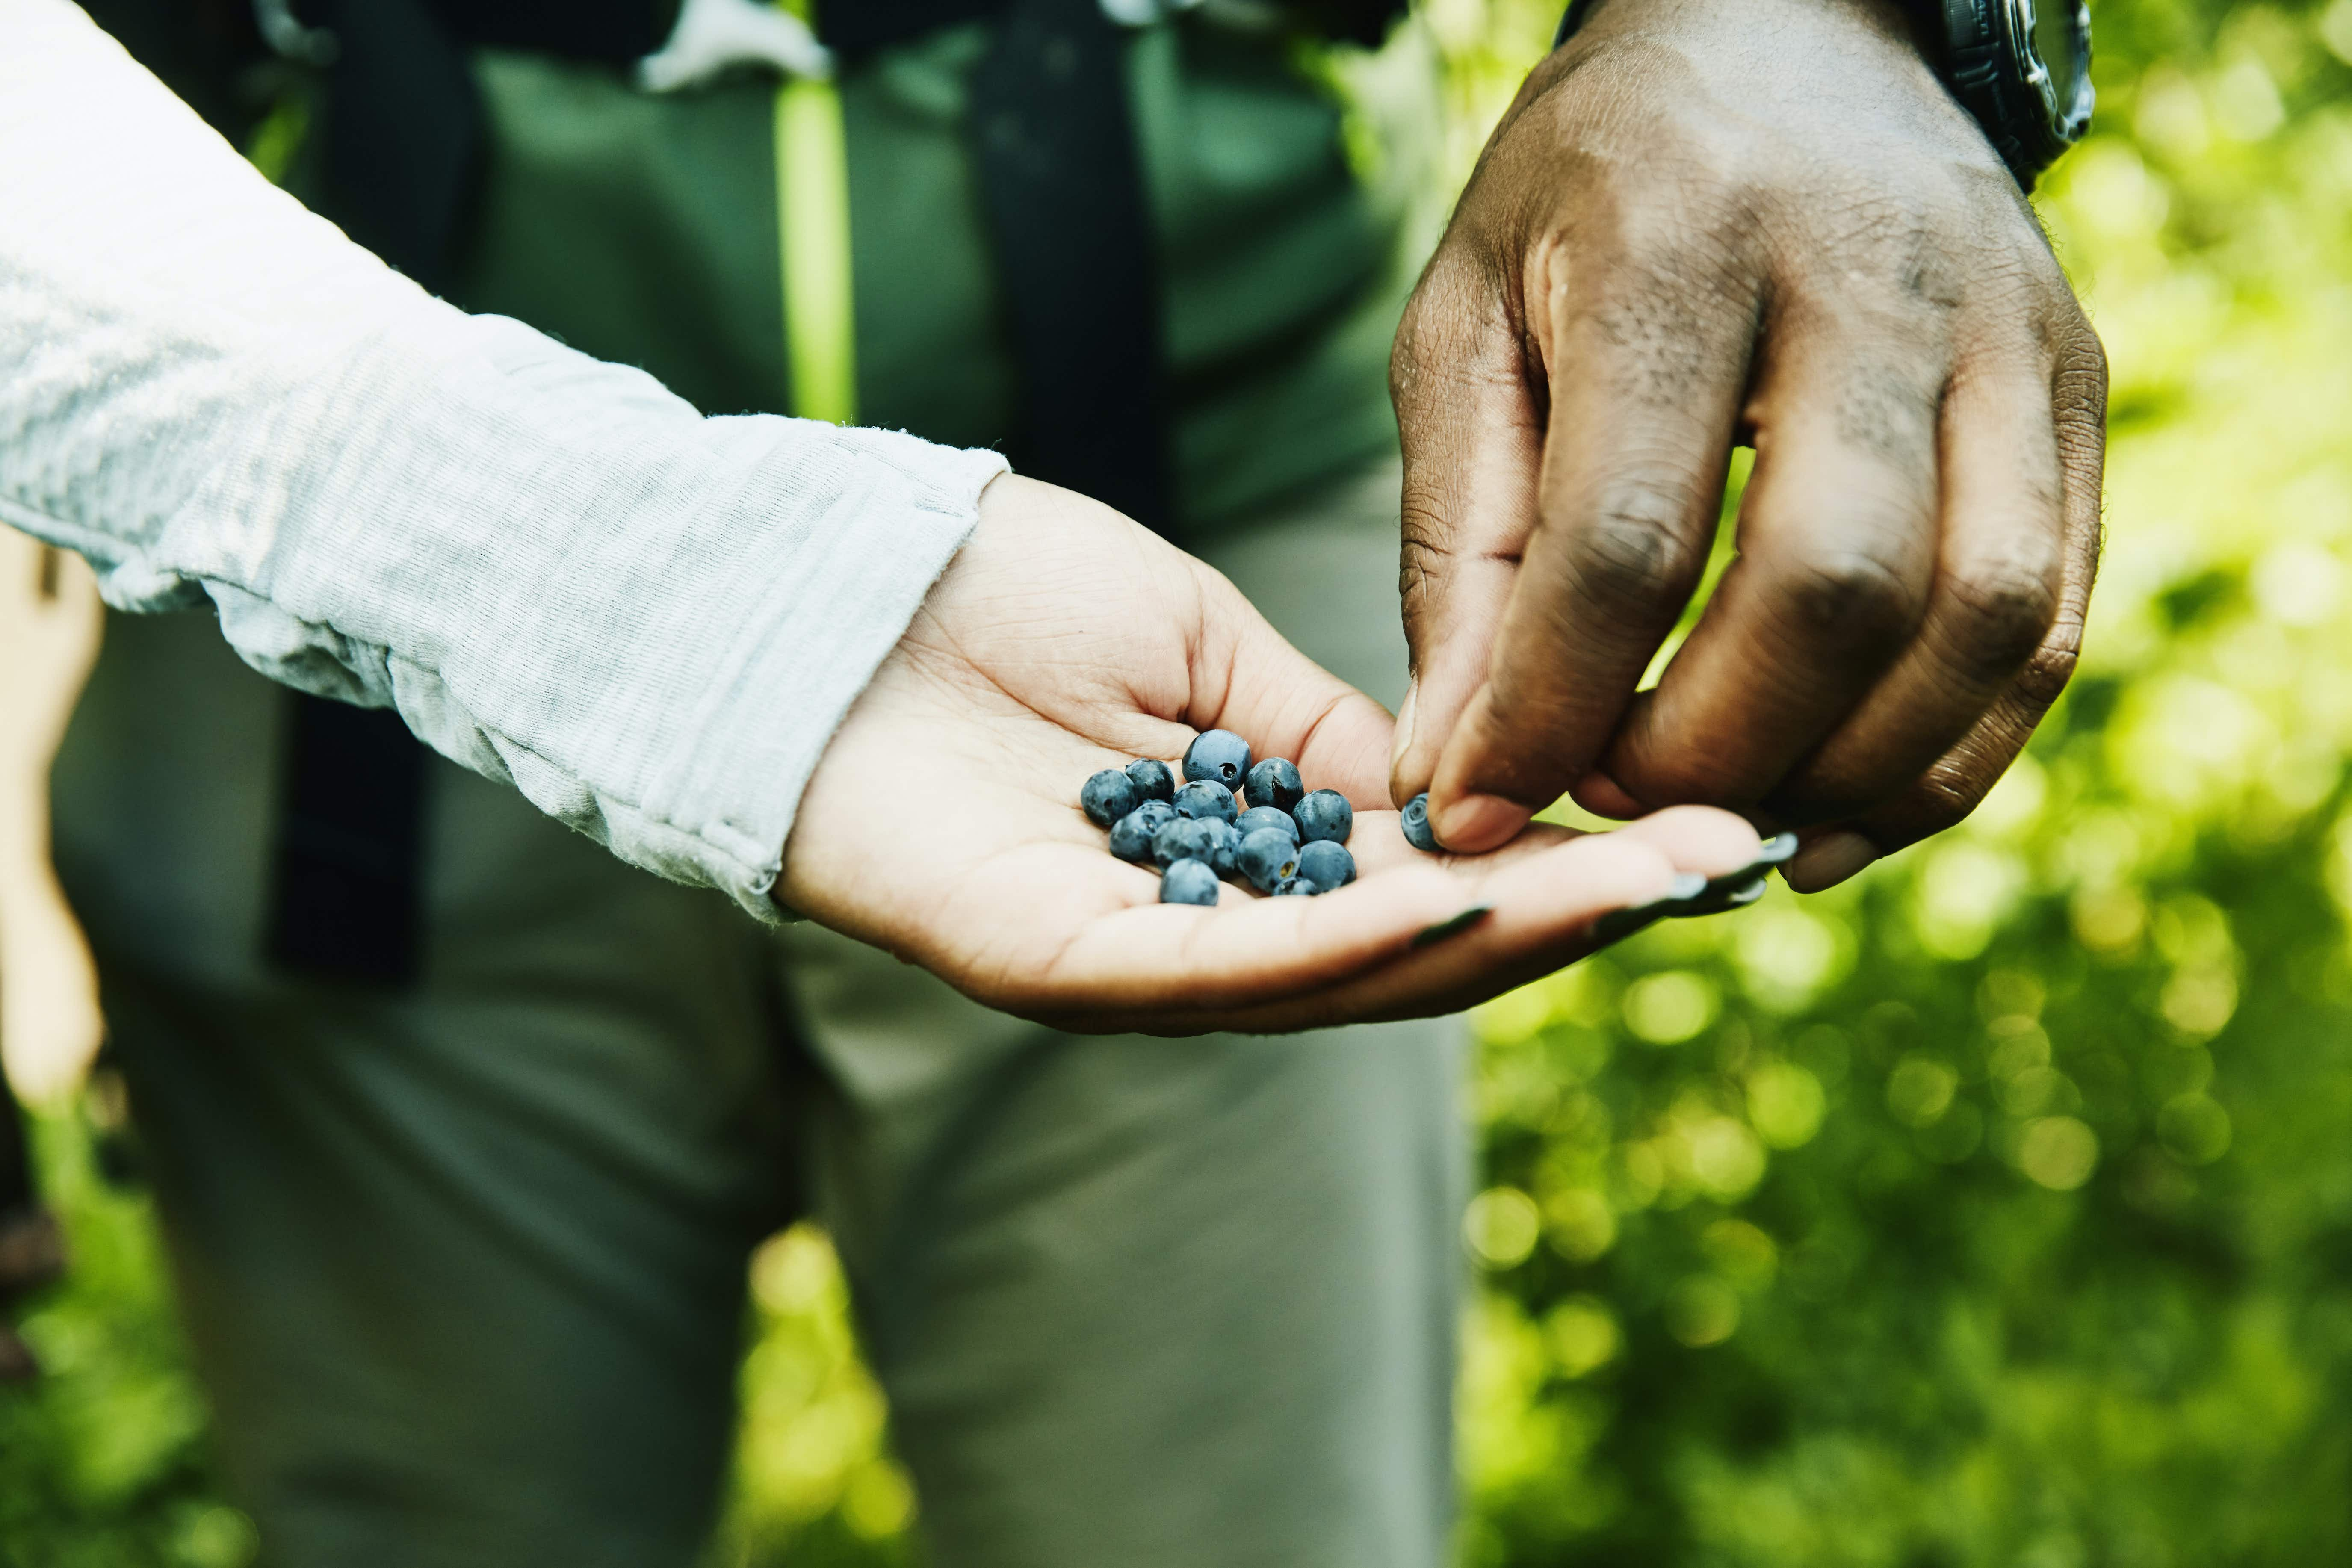 Top 6 places to go foraging in the US